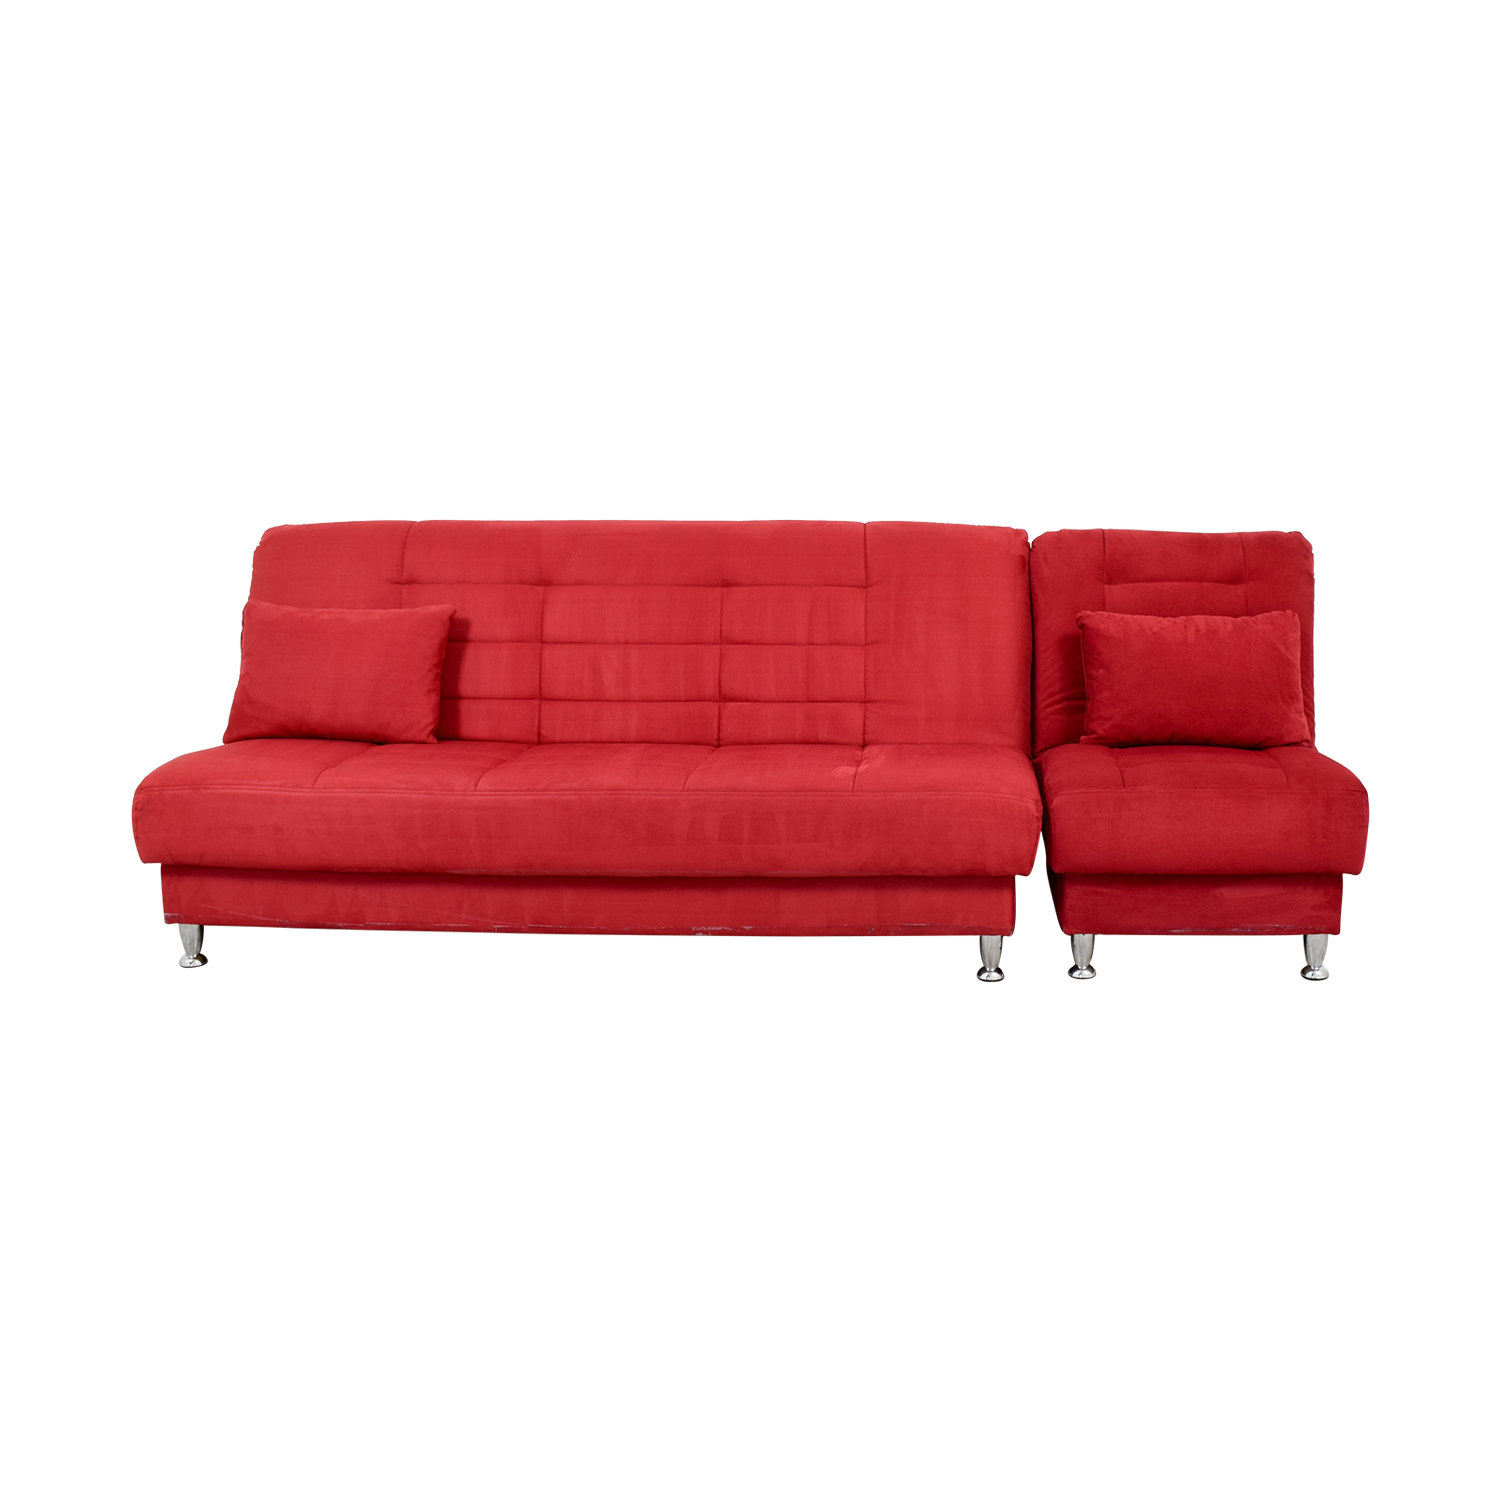 Laude Red Sofa Bed With Storage